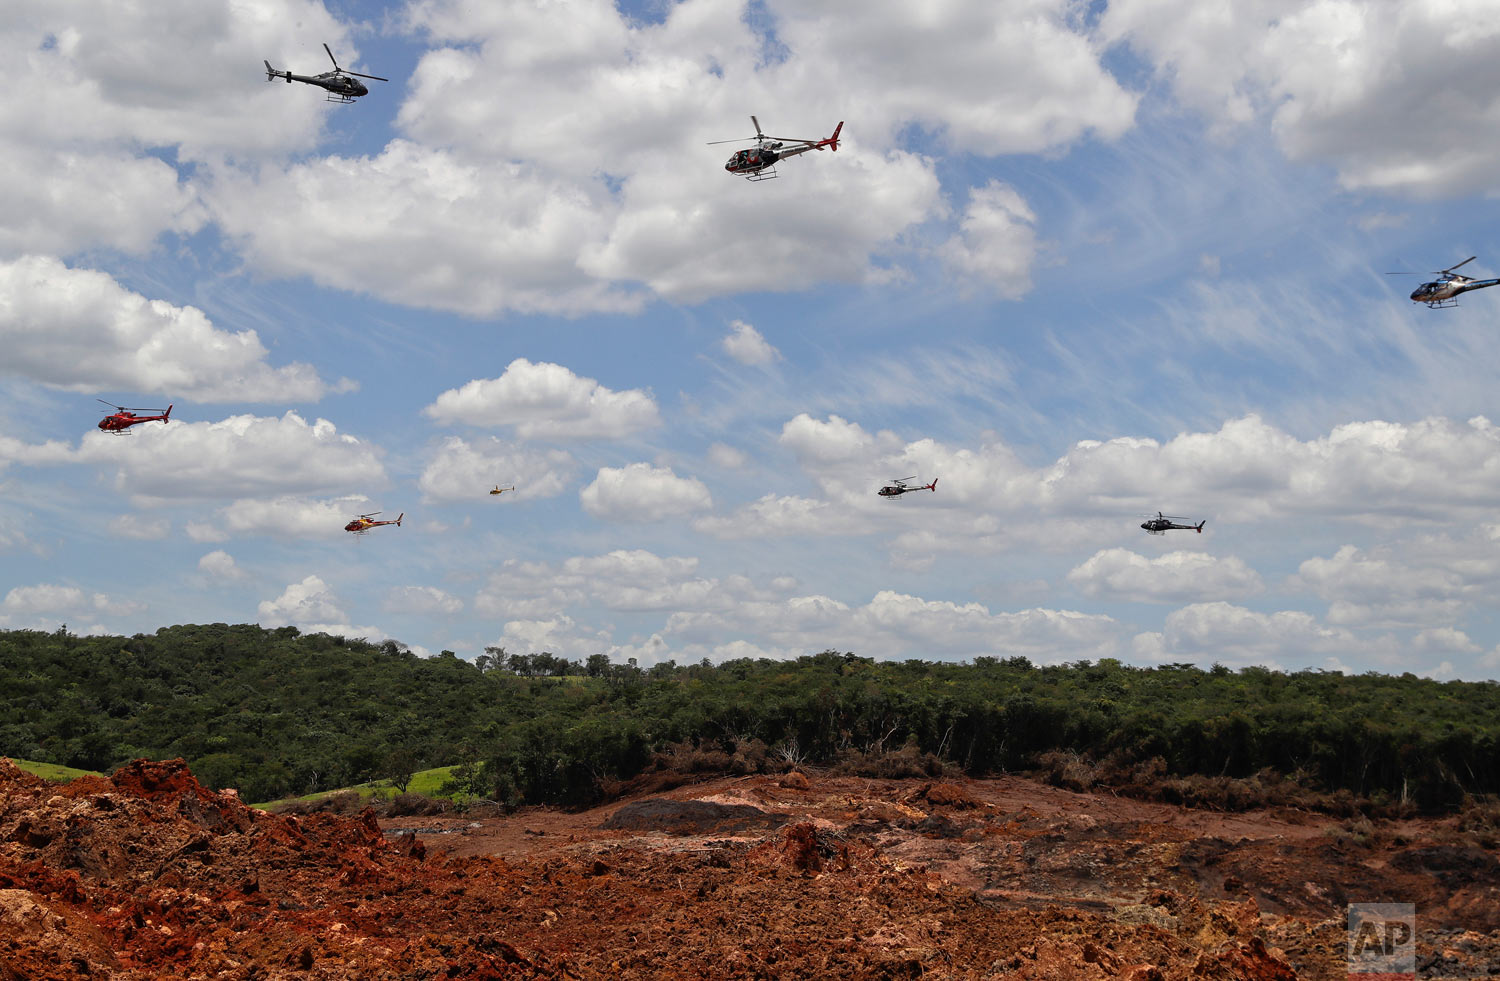 Helicopters hover over an iron ore mining complex to release thousands of flower petals paying homage to the dozens of victims killed and scores of missing after a mining dam collapsed there, in Brumadinho, Brazil, Feb. 1, 2019. (AP Photo/Andre Penner)